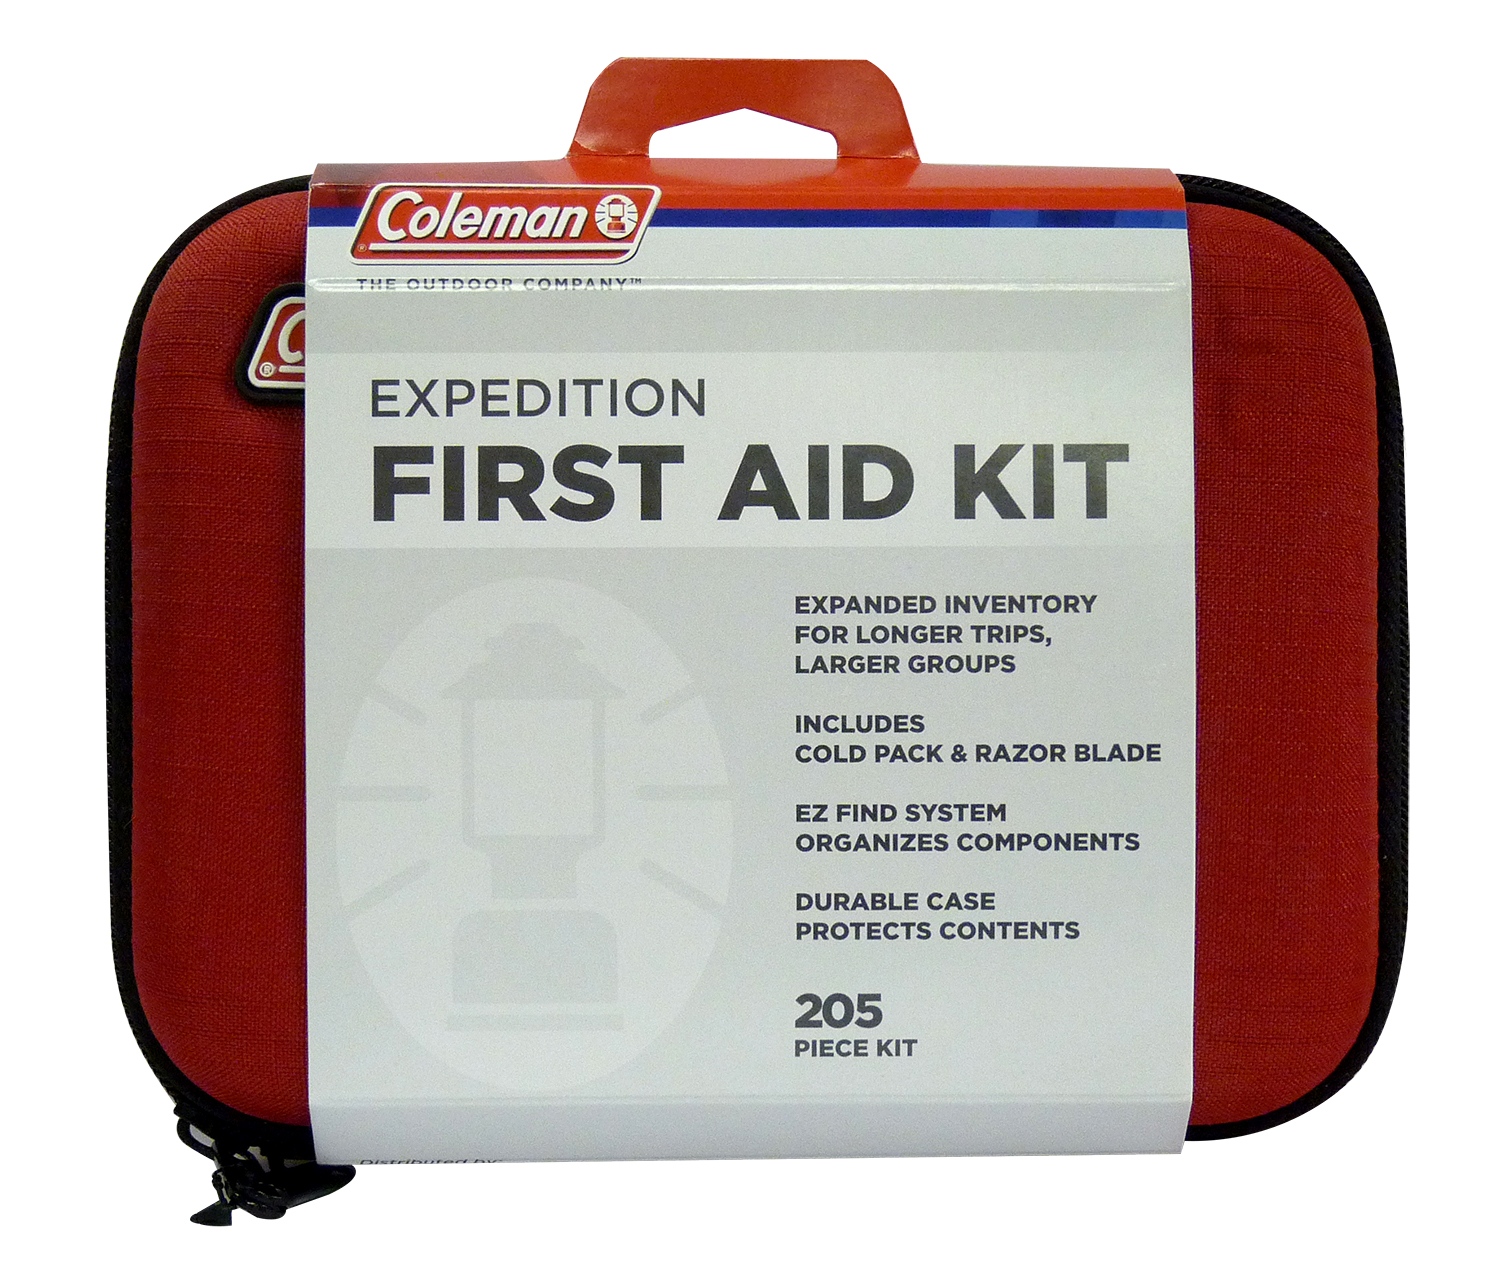 7604 - WPC Coleman Expedition First Aid Kit 2014